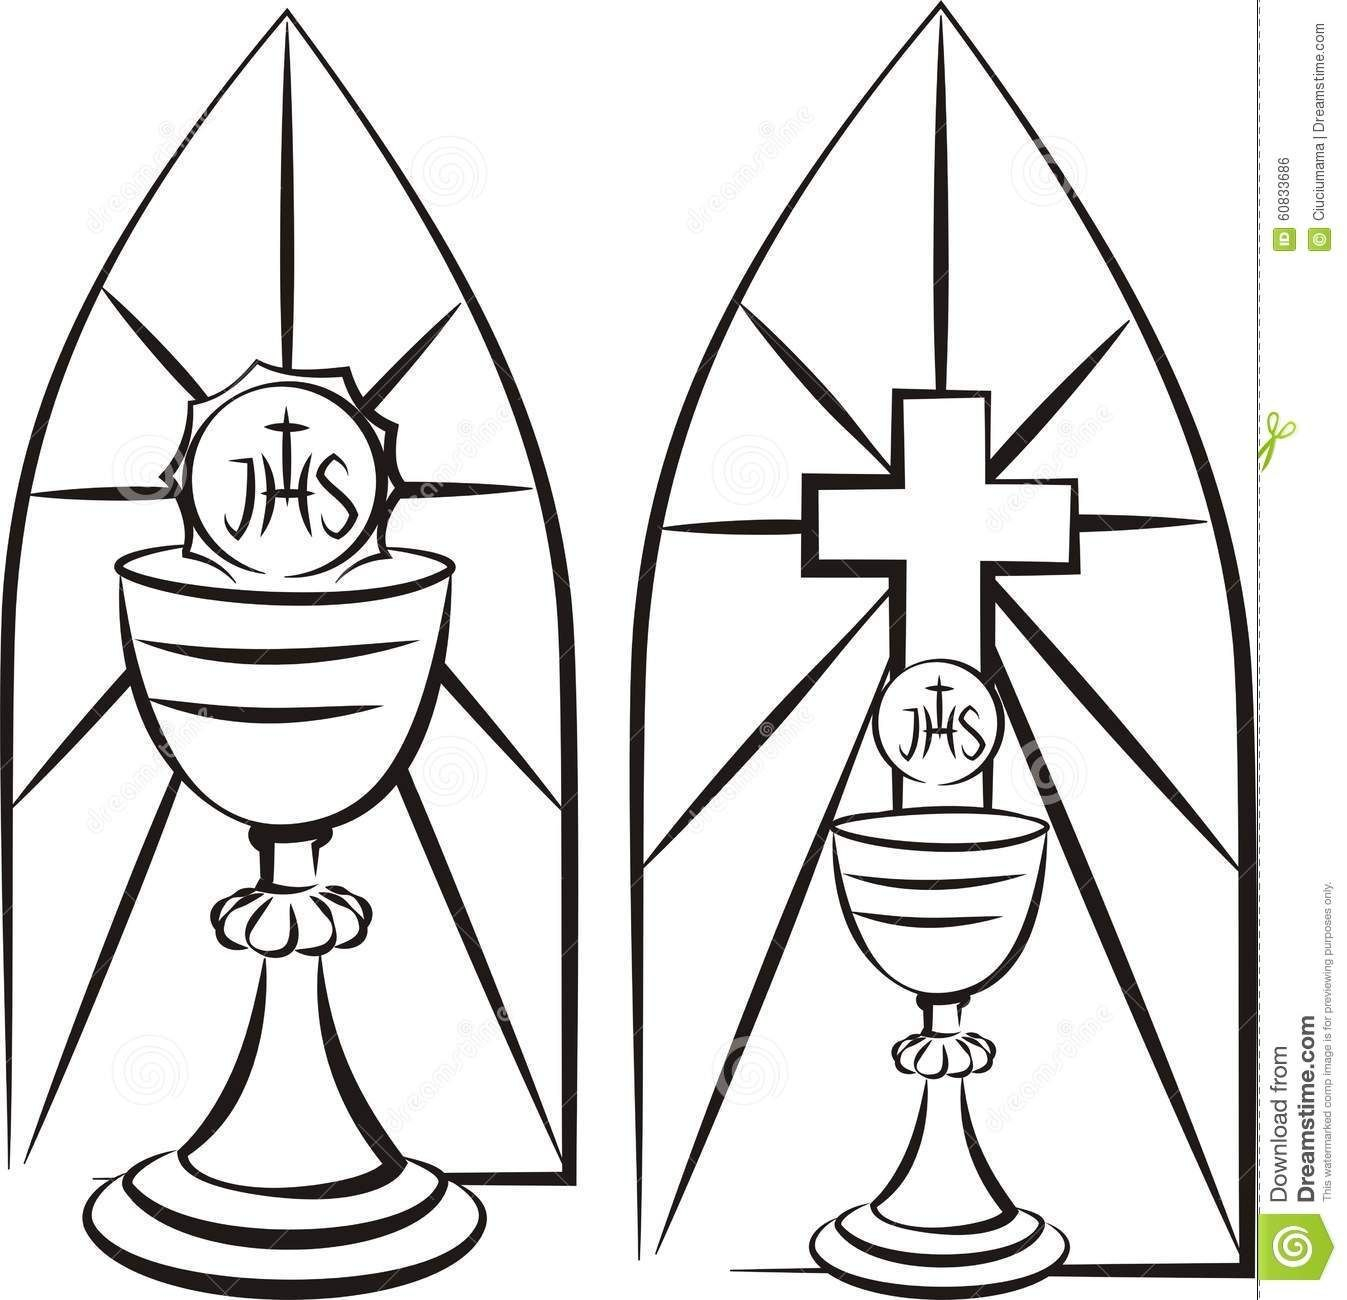 Image Result For Stain Glass First Communion Banner Template Intended For First Communion Banner Templates